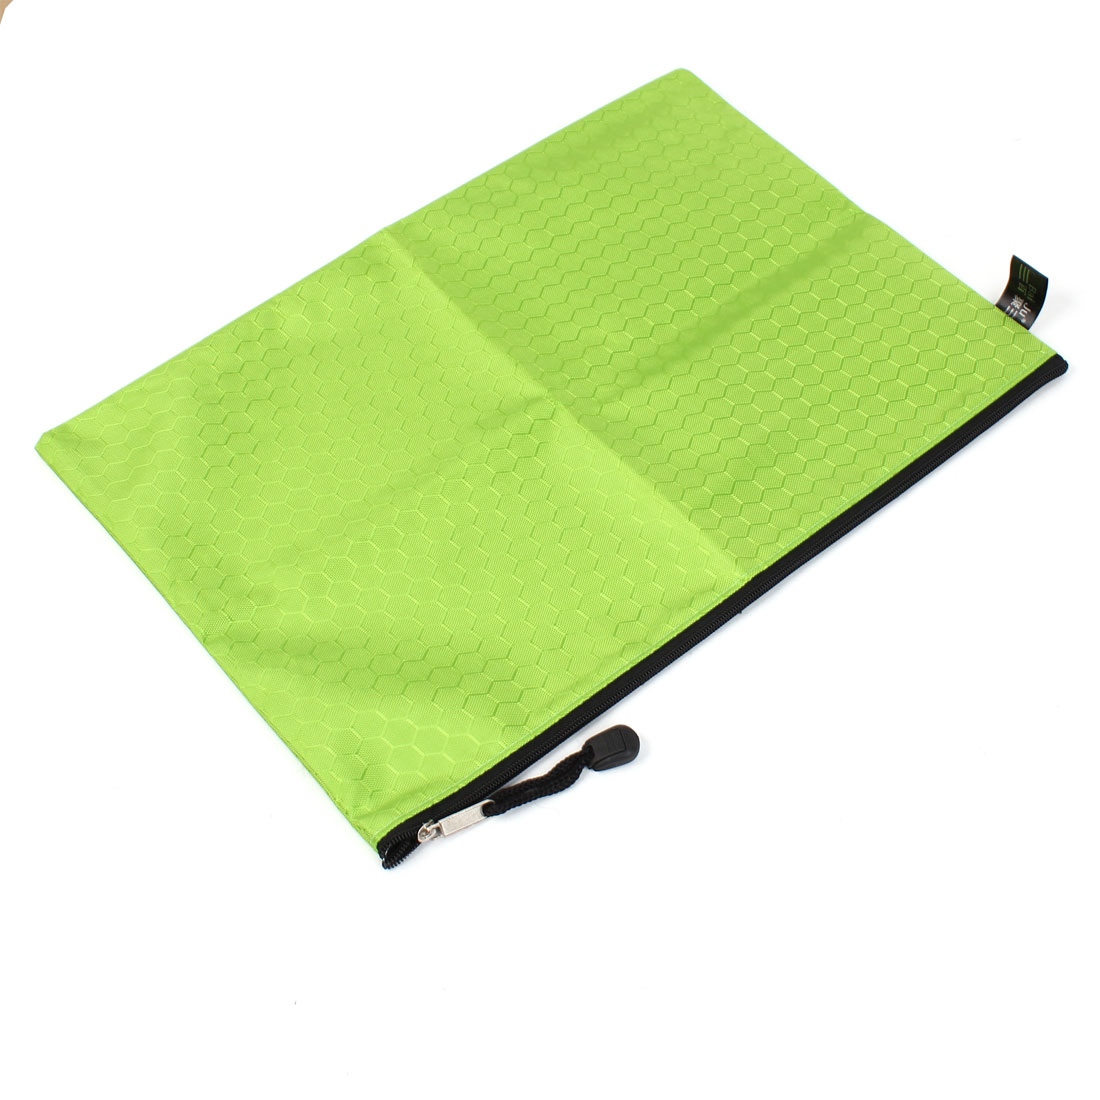 Portable Green Nylon Hexagon Pattern A4 Paper Document Files Holder Zipper Bag